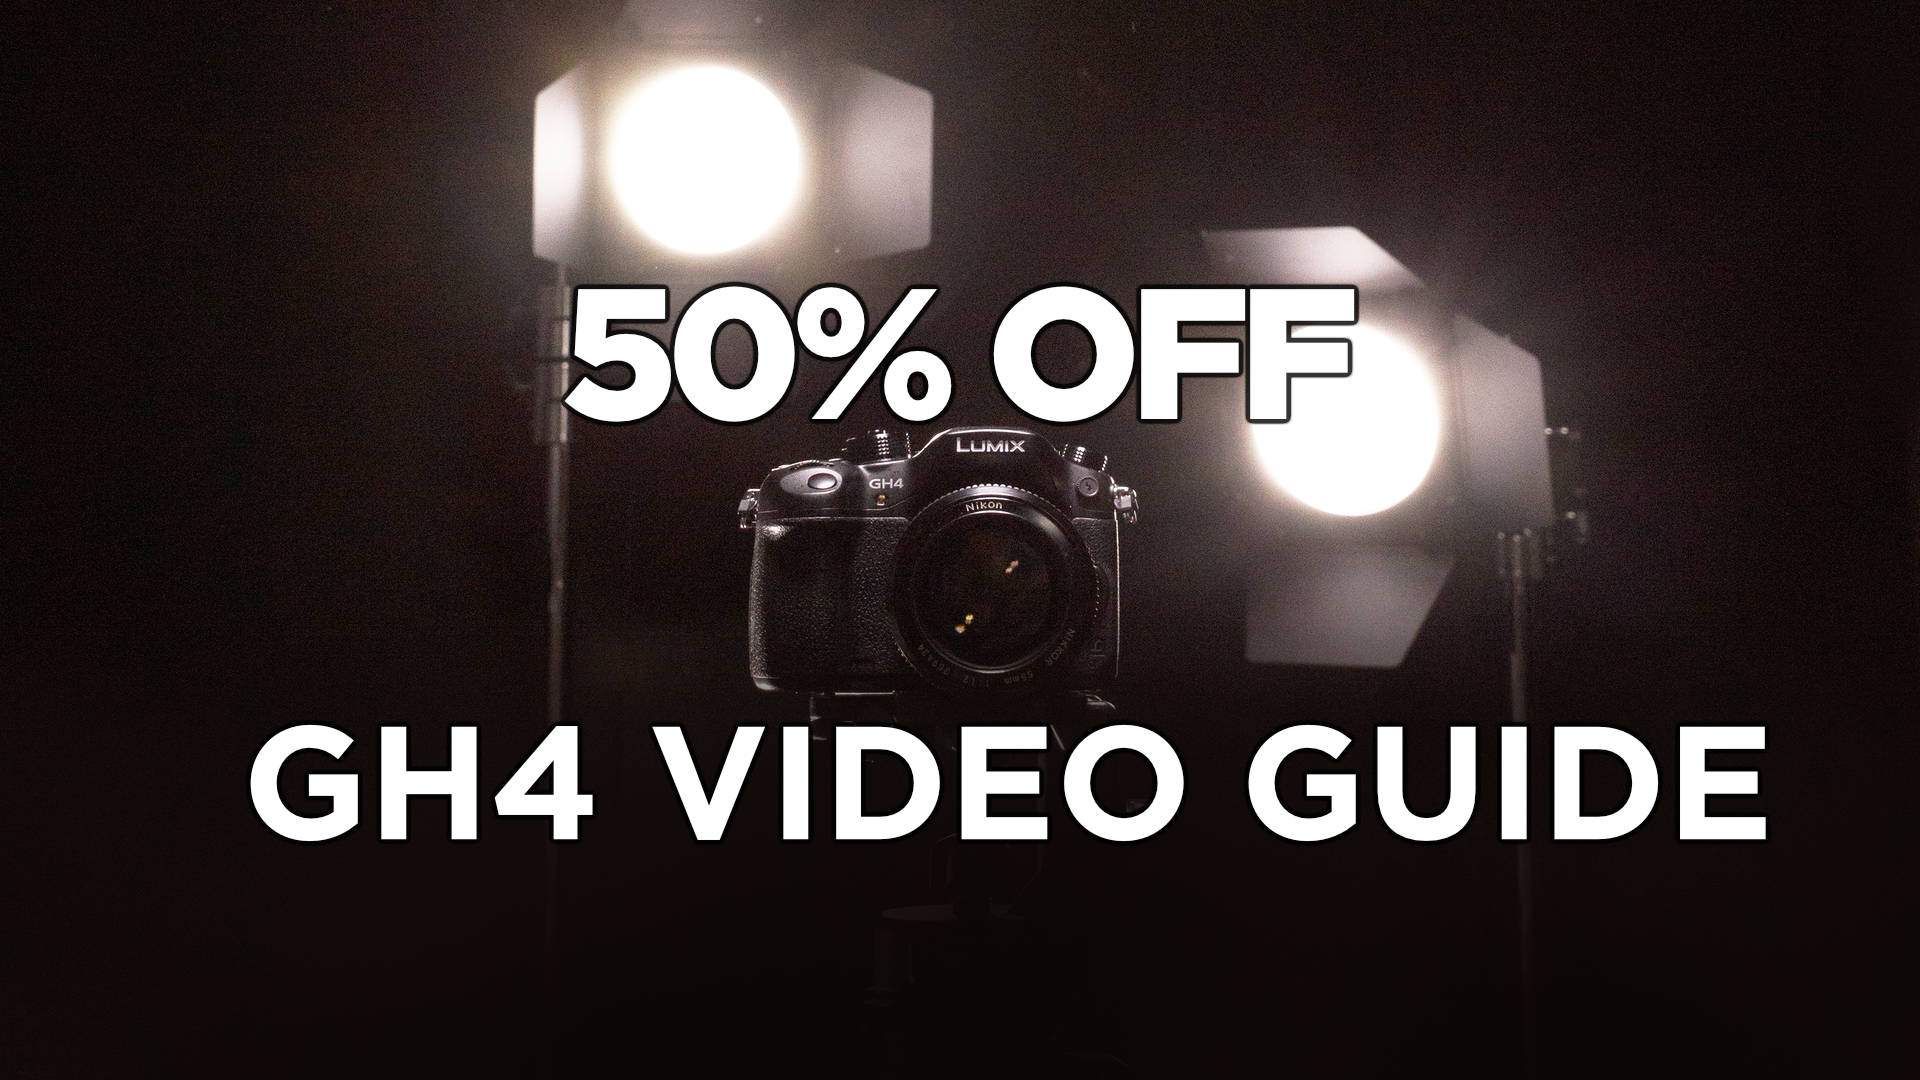 GH4 Guide is 50% Off Today and Tomorrow!